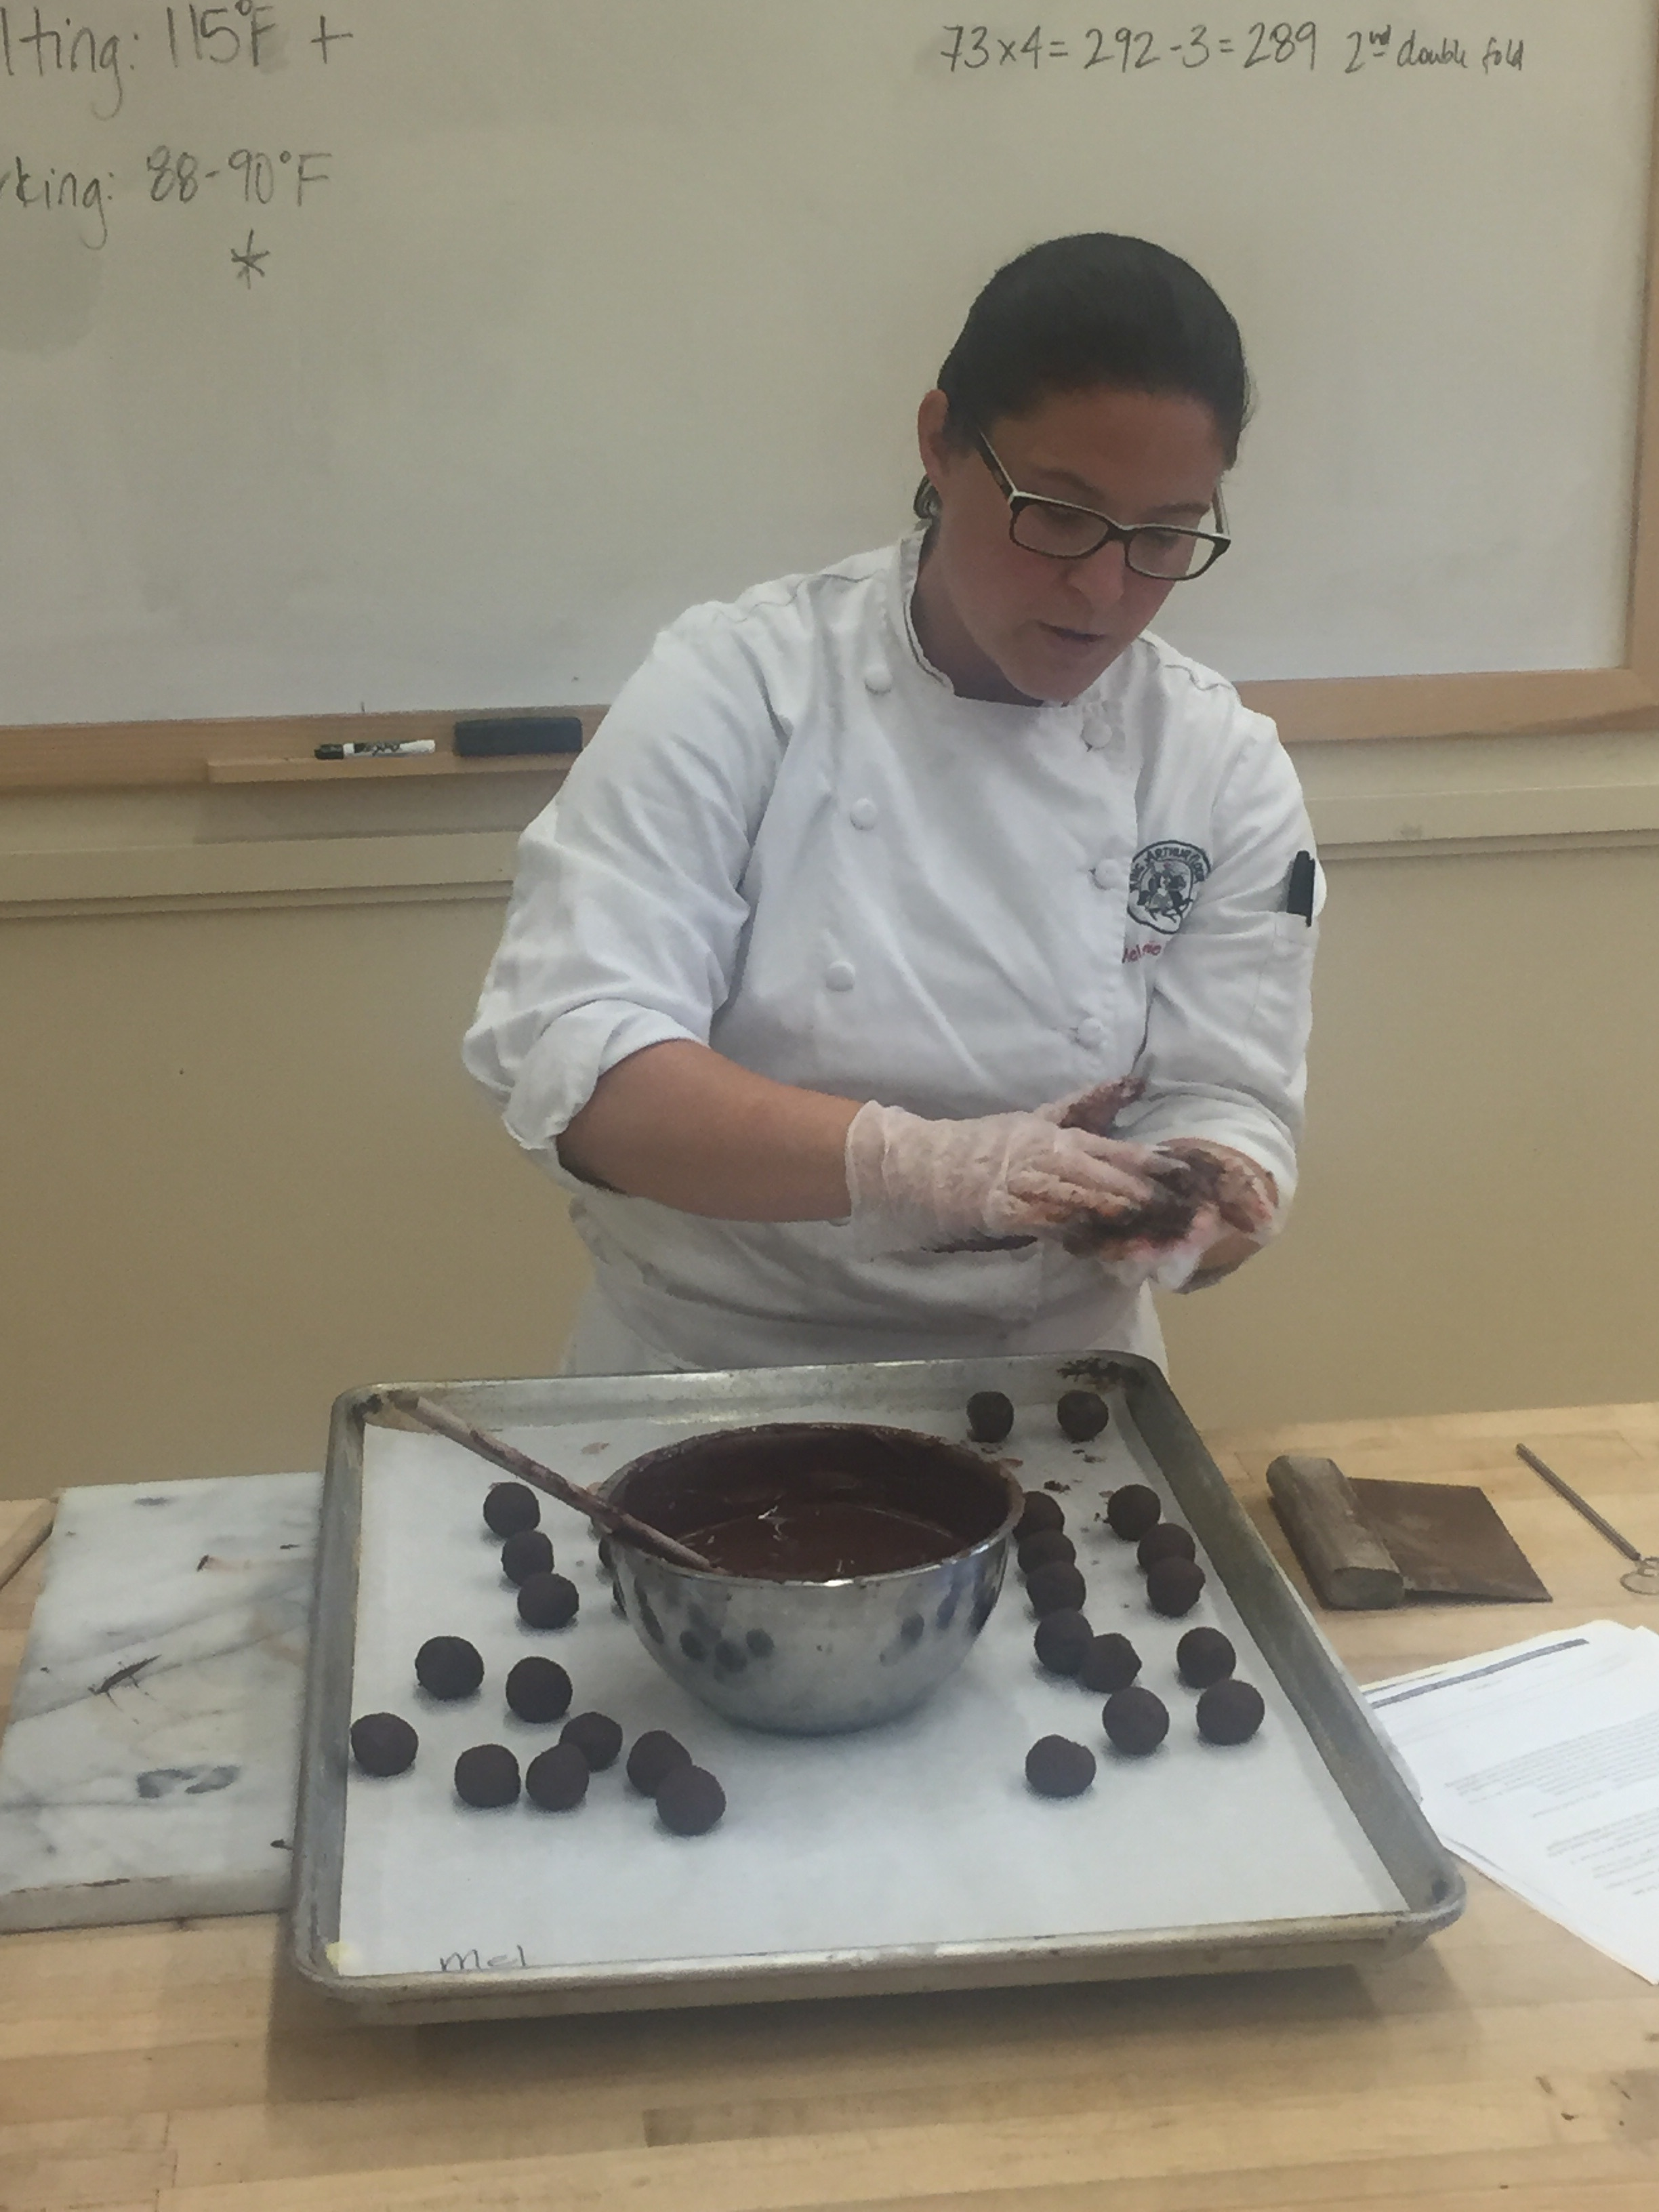 Note the near perfect round shape and cleanliness of Melanie's truffles and pan!